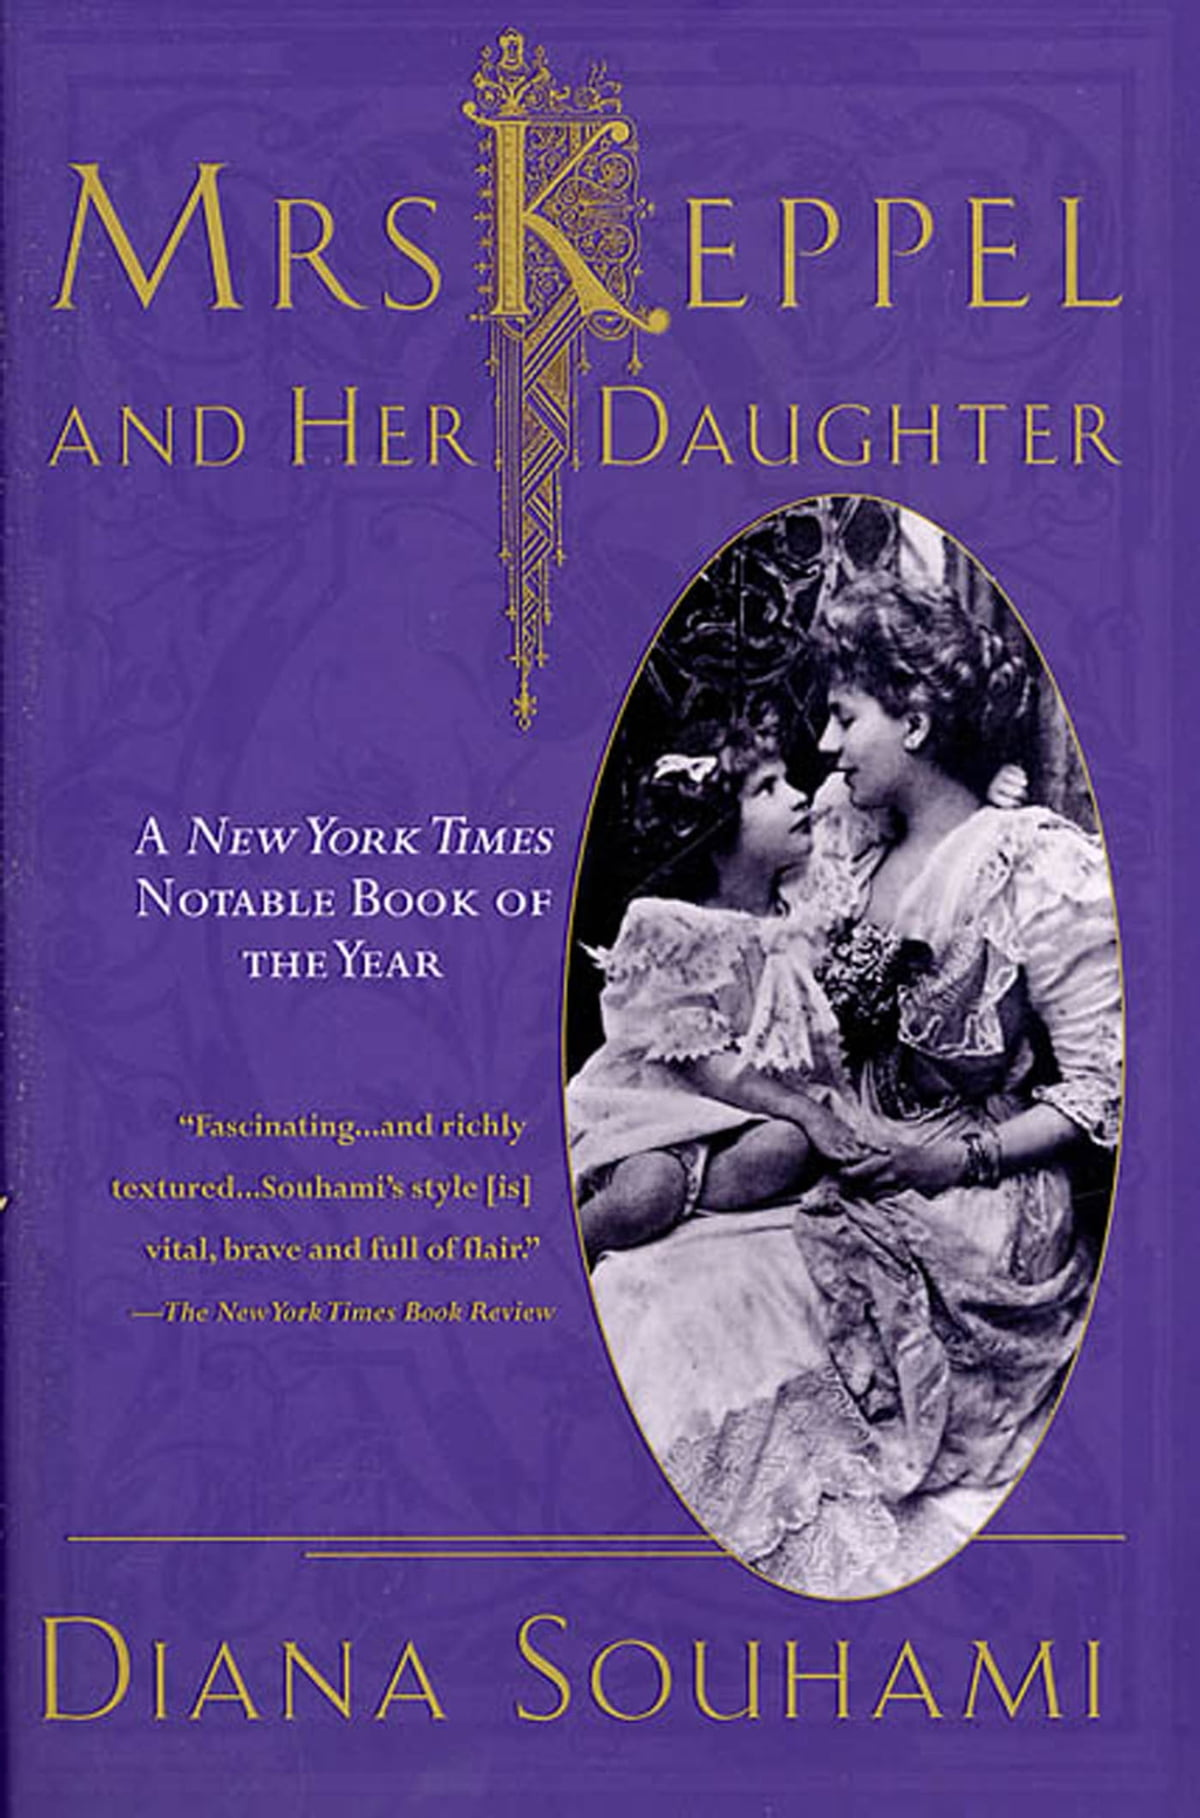 Mrs keppel and her daughter ebook by diana souhami mrs keppel and her daughter ebook by diana souhami 9781466883505 rakuten kobo fandeluxe PDF